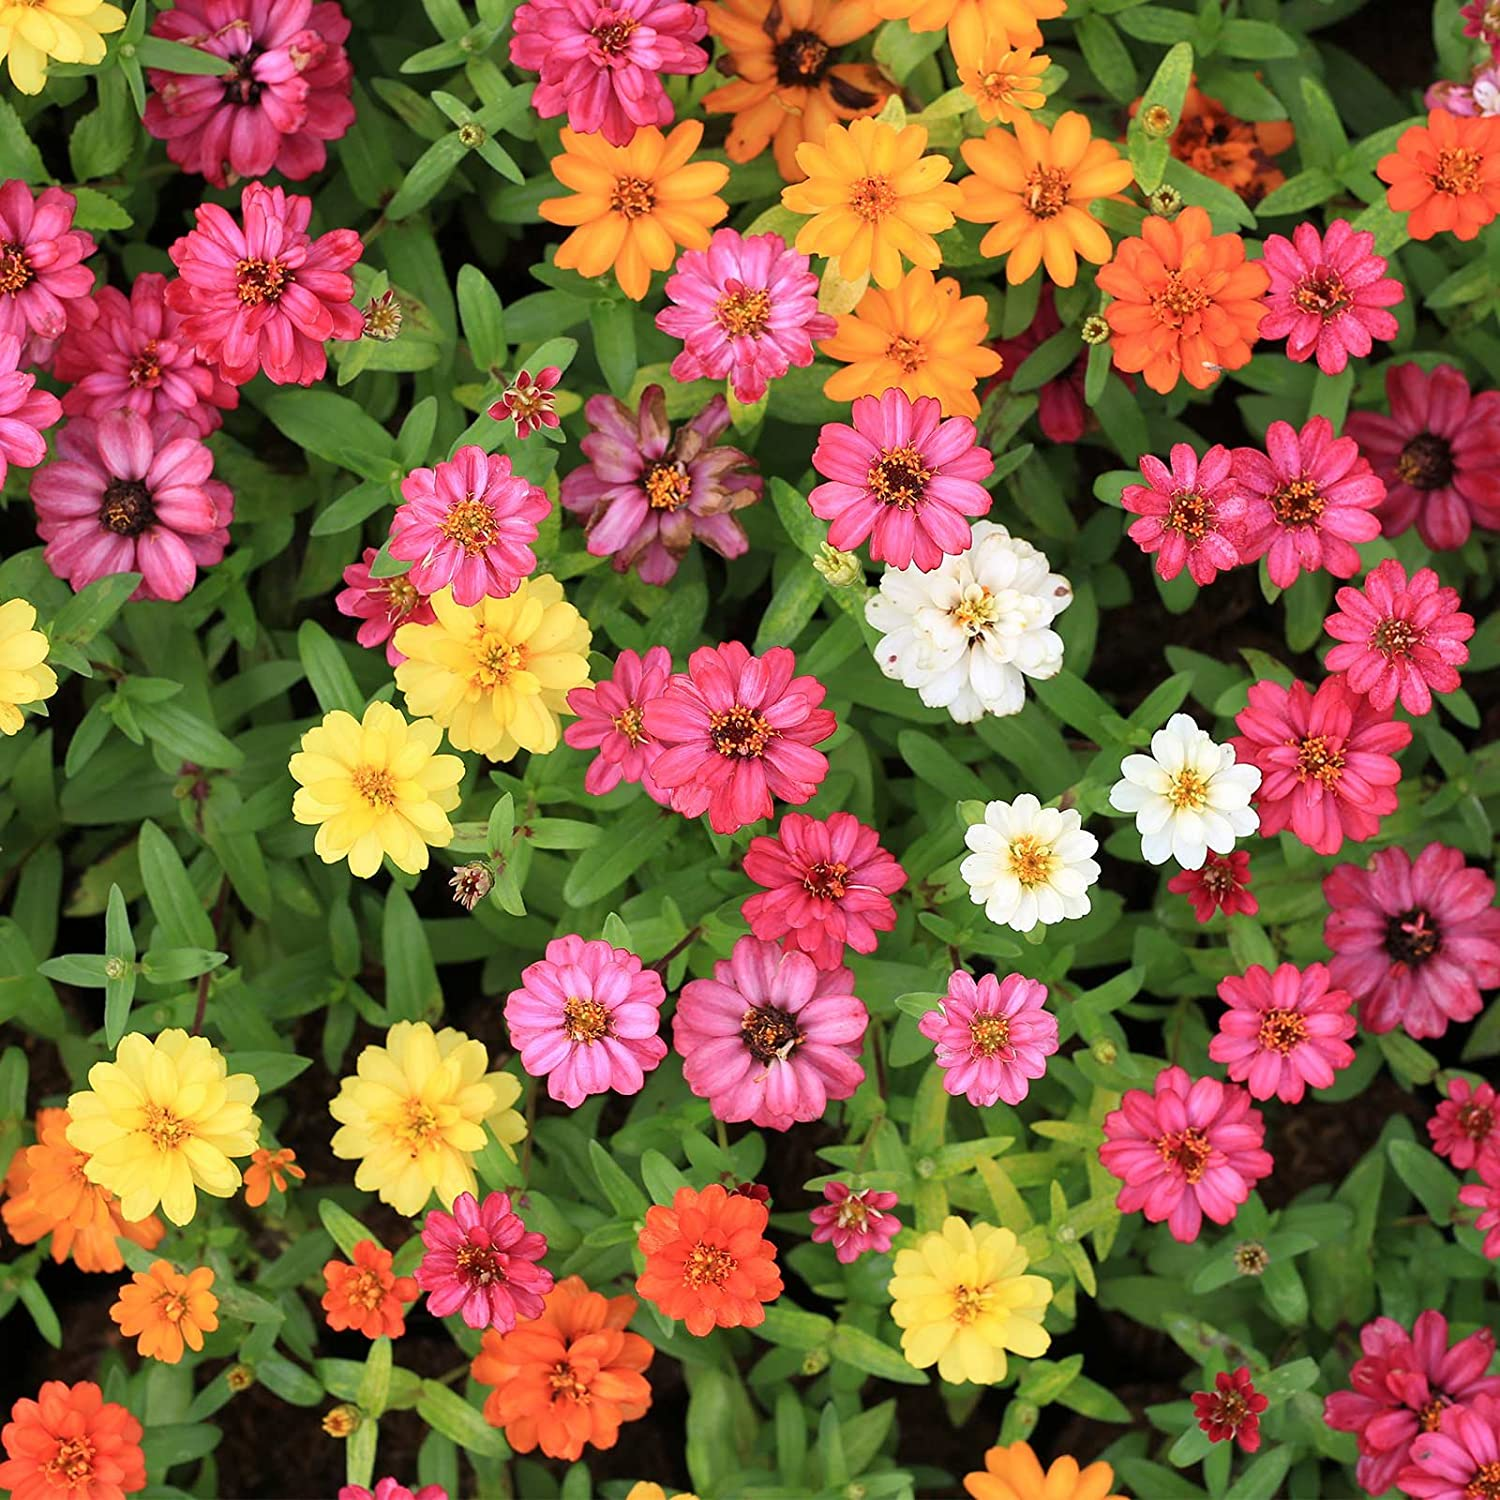 Amazon.com : Zinnia Flower Garden Seeds - Profusion Series - Seven ...